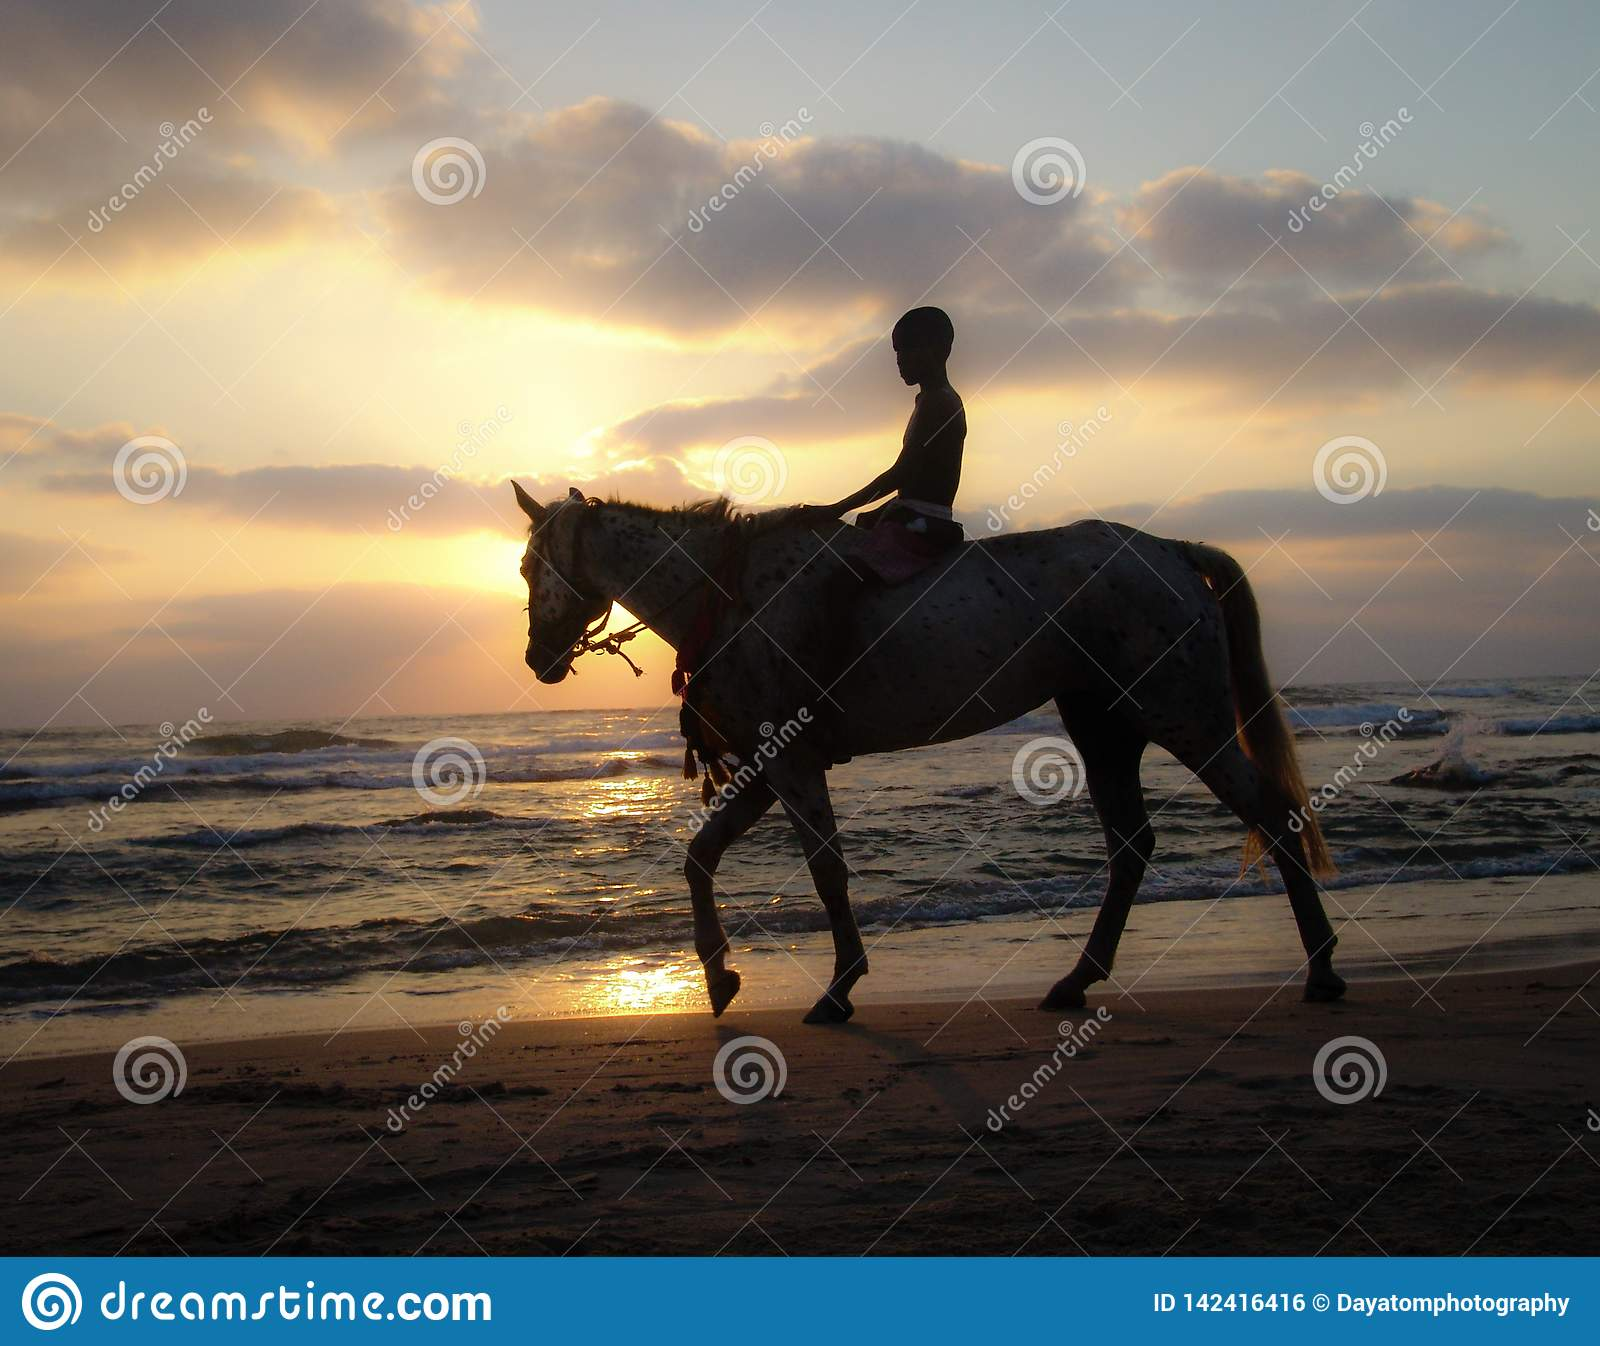 Silhouette of a young boy riding a horse at sunset on a sandy beach under a cloudy warm sky